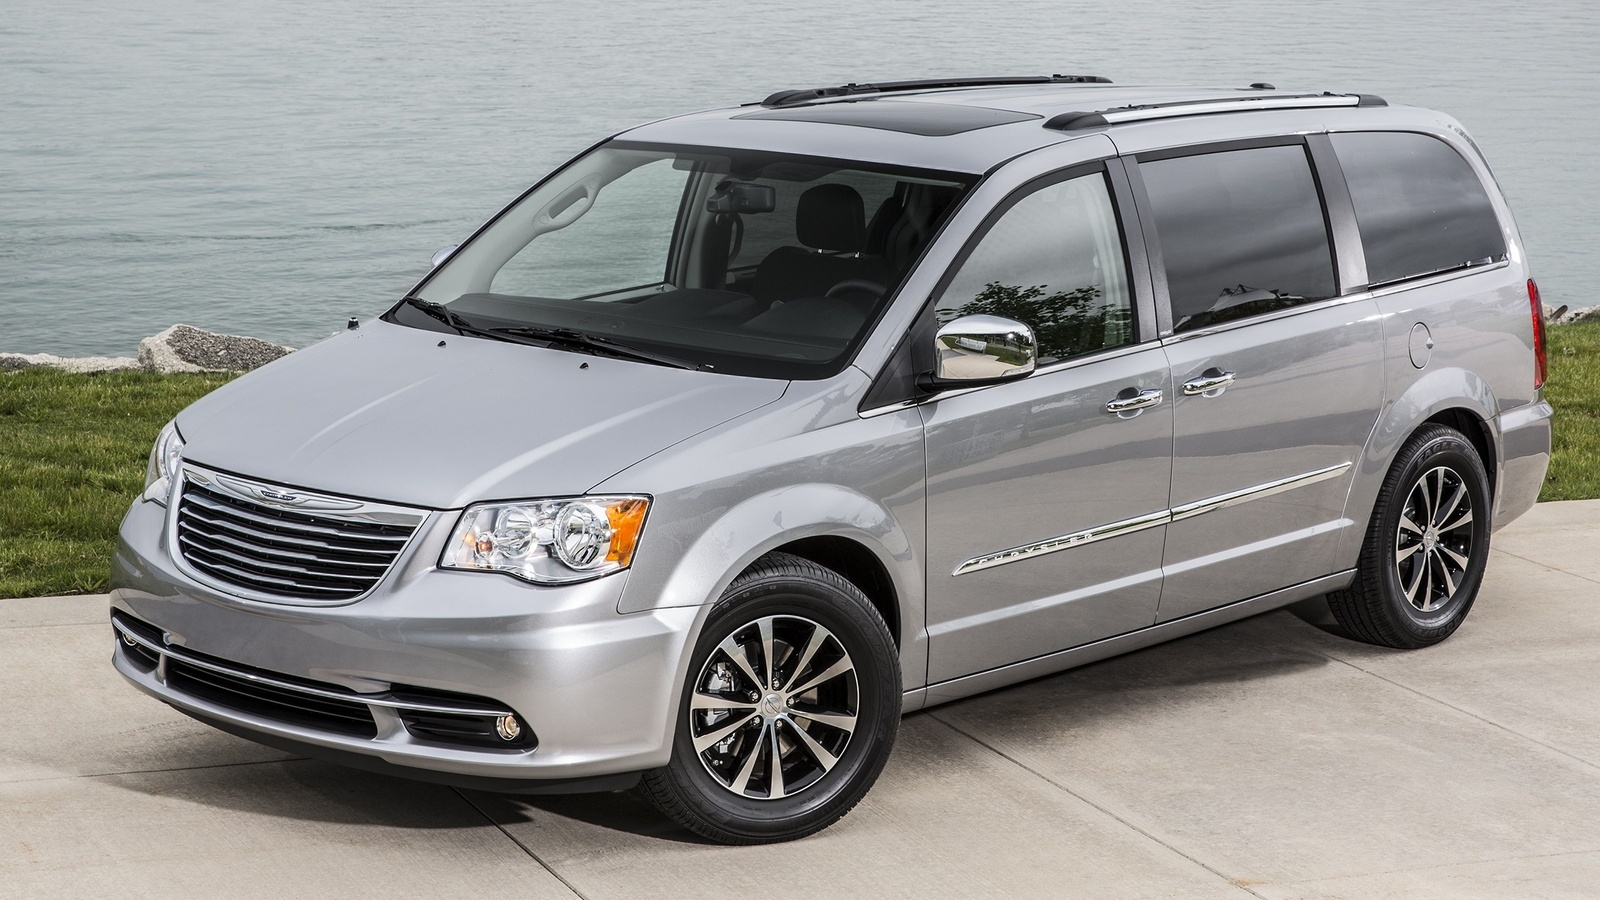 2015 Chrysler Town & Country - Overview - CarGurus